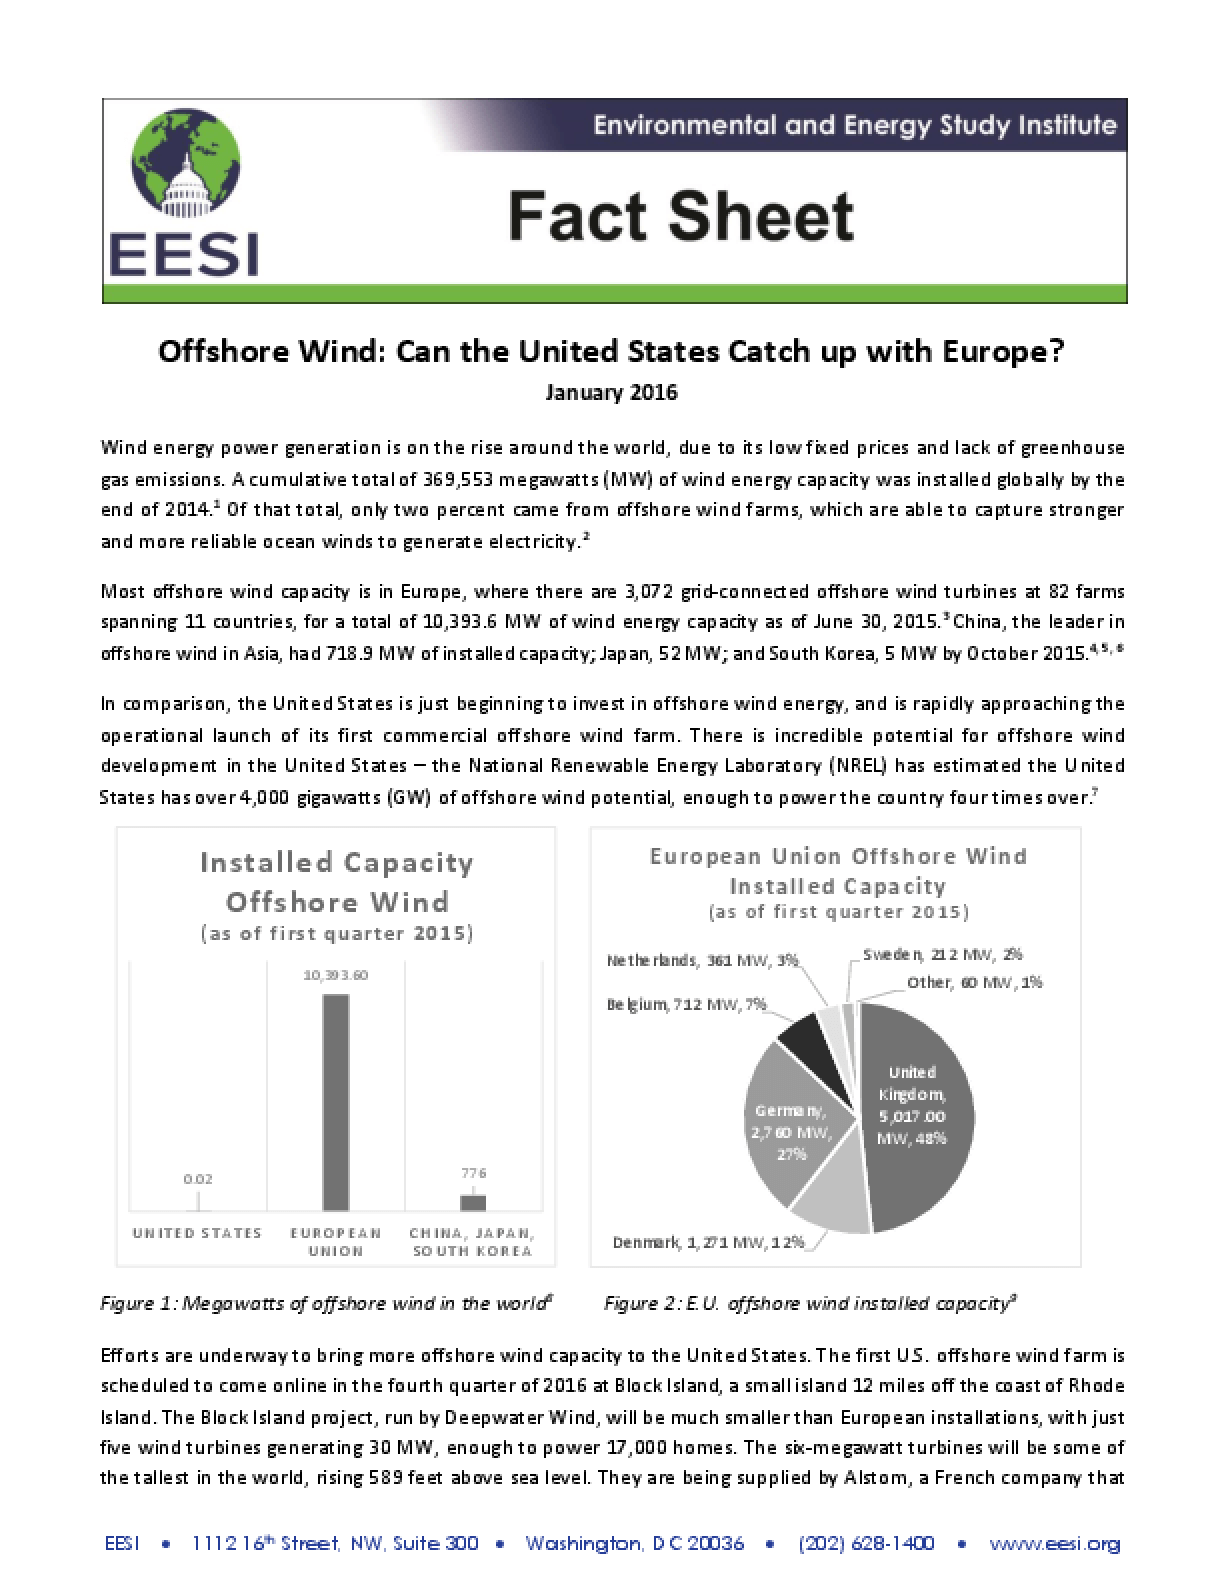 Fact Sheet: Offshore Wind - Can the United States Catch up with Europe?